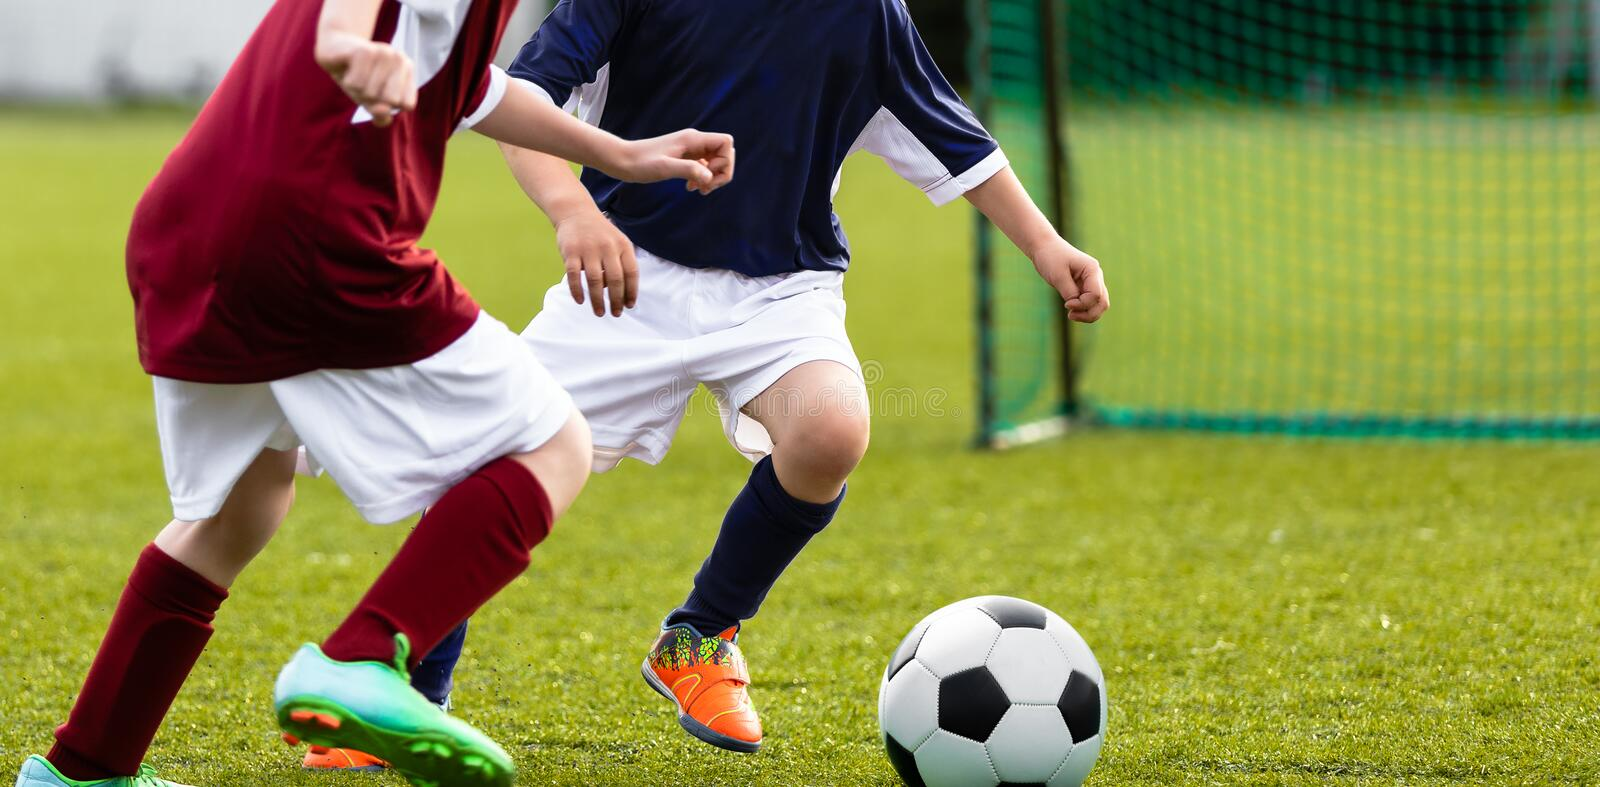 Children soccer game. Kids kicking soccer ball on a sports grass field. Children running after the ball stock image